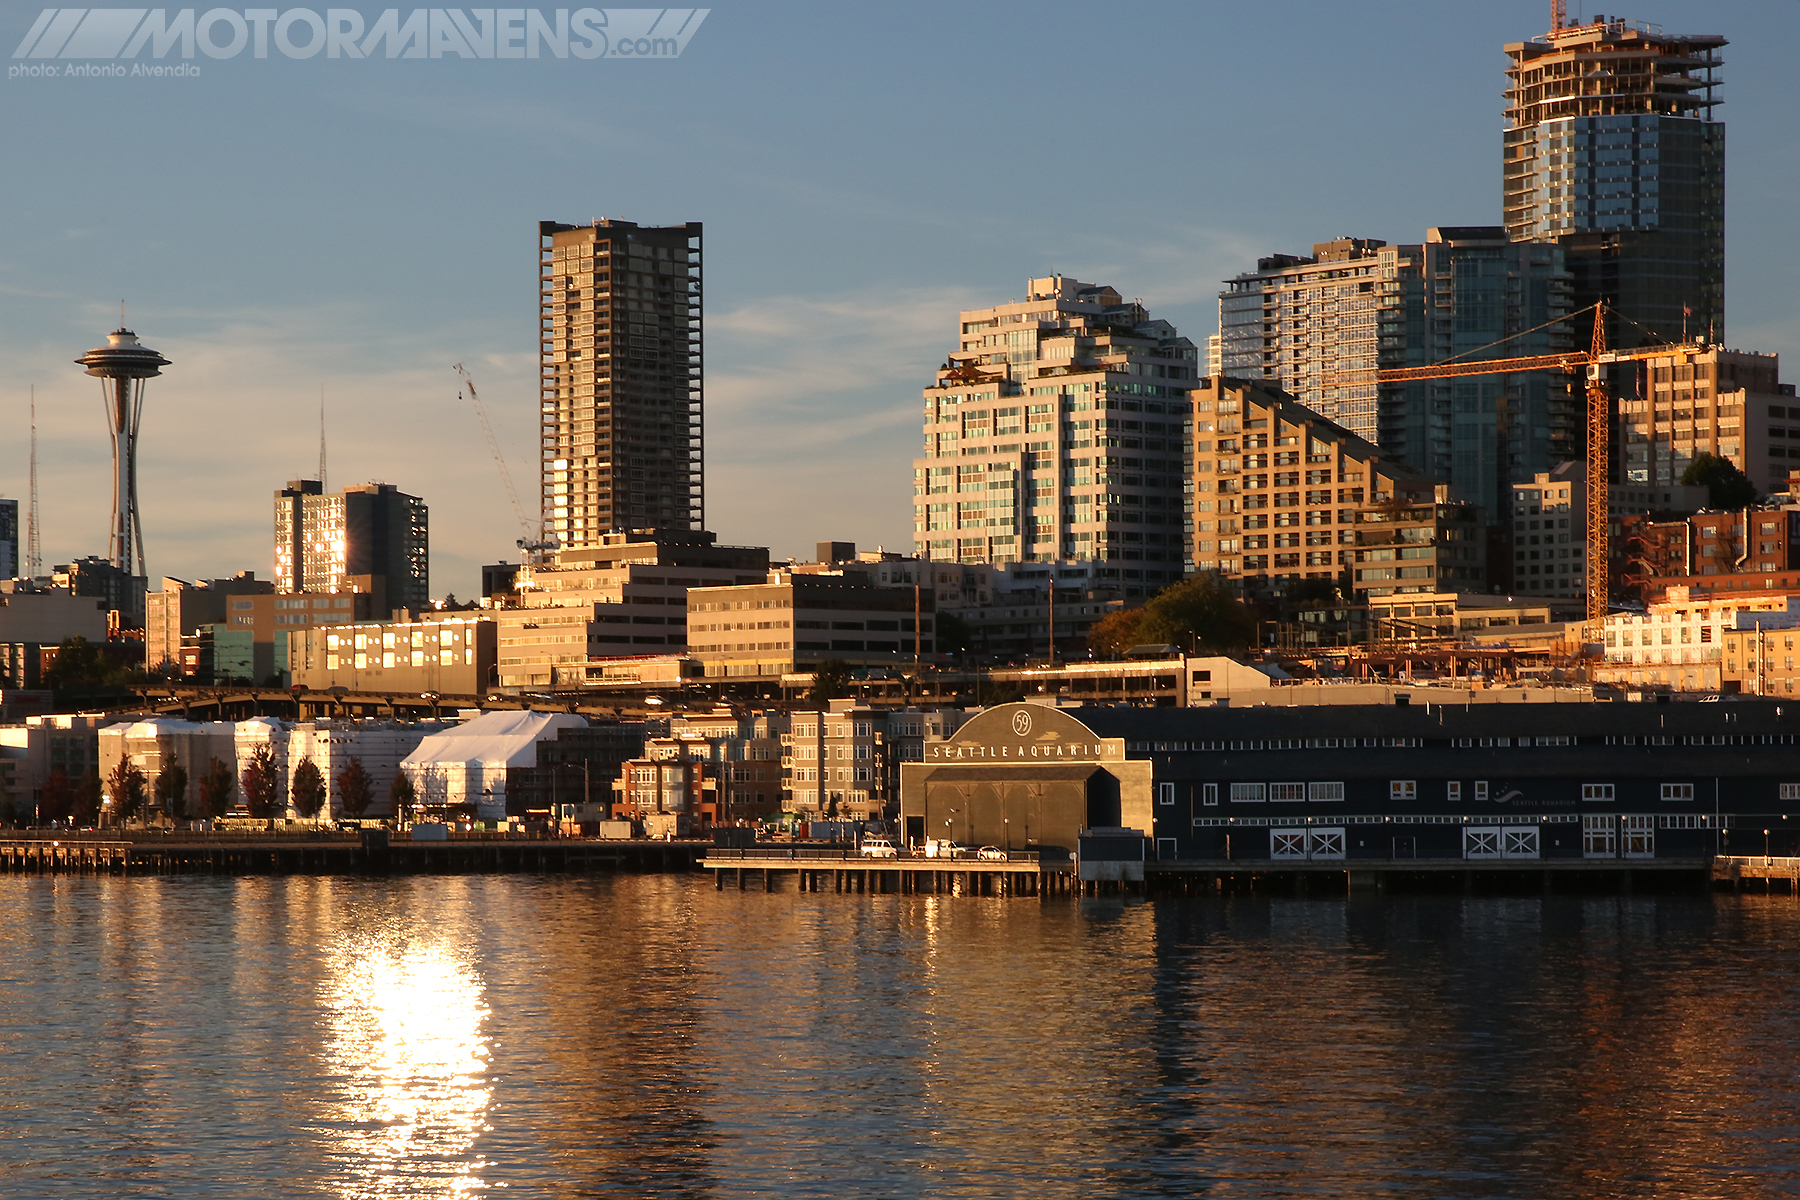 Seattle Waterfront, Pike Place Market, Space Needle, Seattle Aquarium